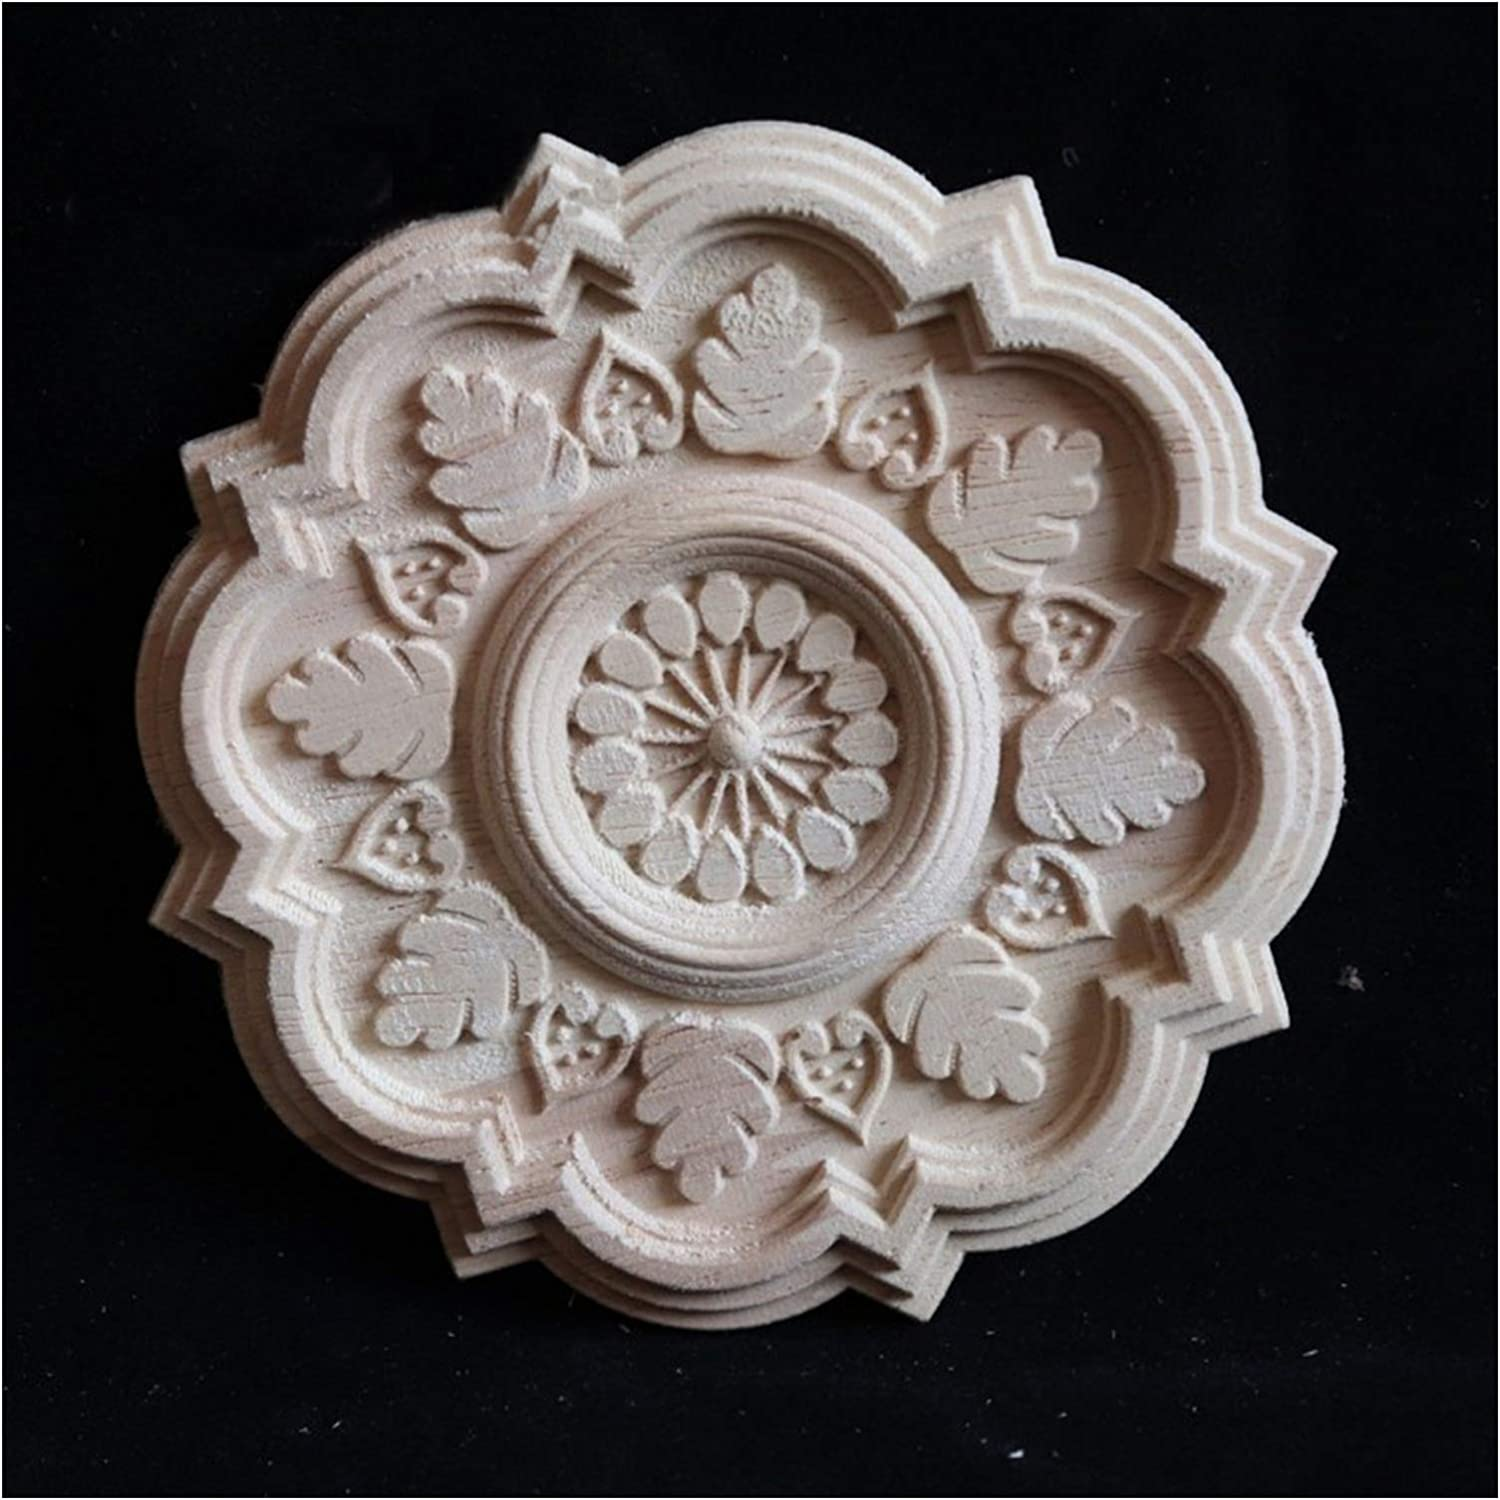 Furniture Free Shipping Cheap Bargain Gift Stickers 6Pcs Wooden Onlay for Ranking TOP20 Furnitur Appliques Home